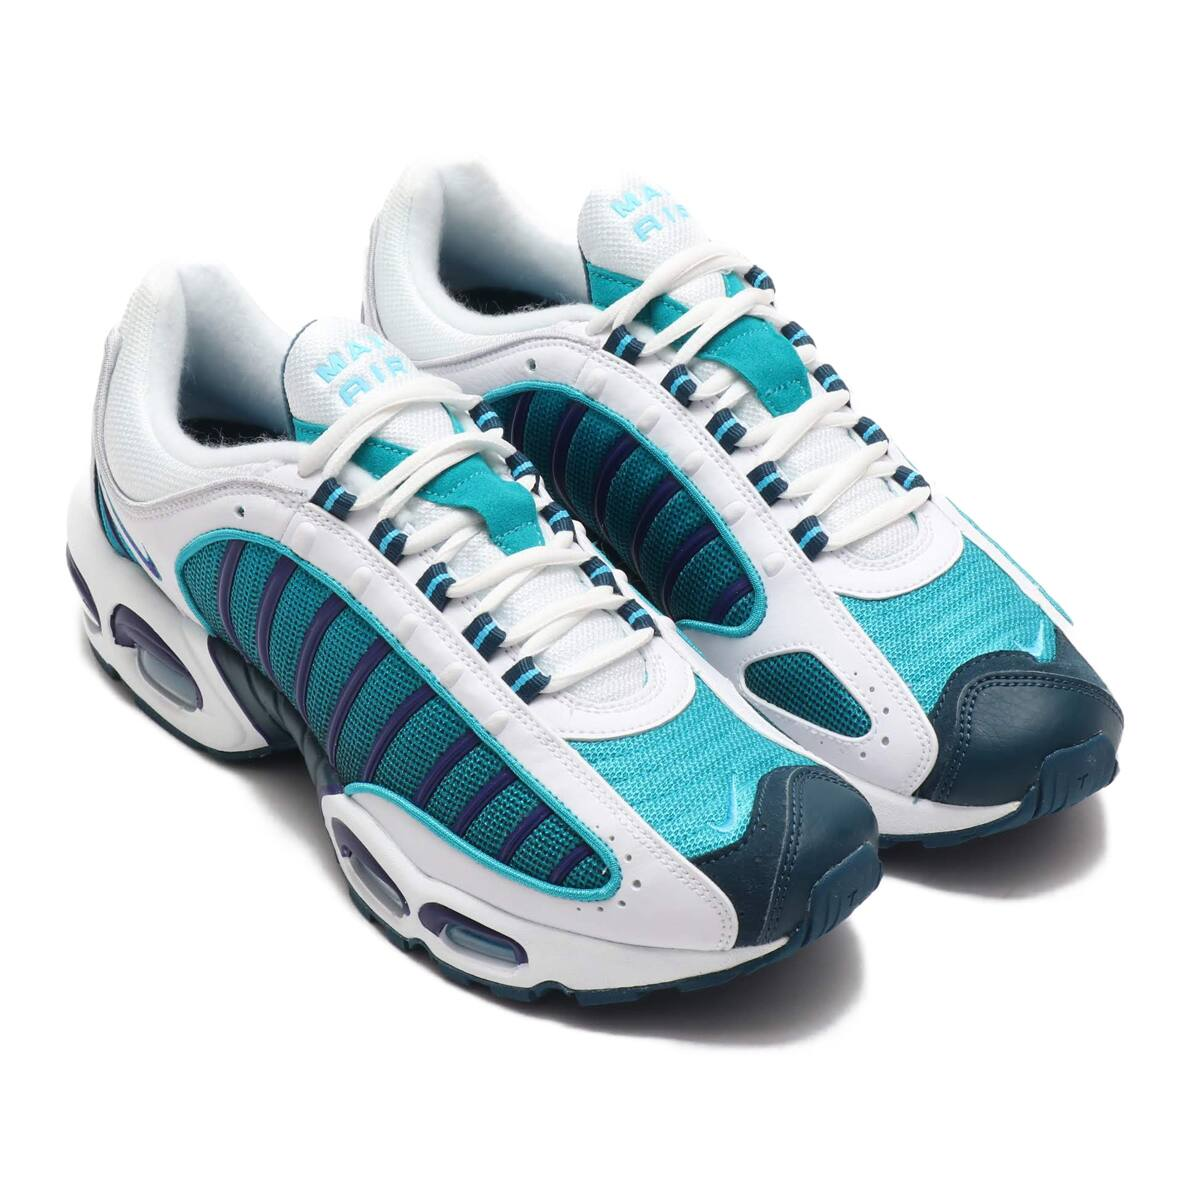 NIKE AIR MAX TAILWIND IV WHT/RGNCY PRPL-SPRT TL-BL FRY 19SU-S_photo_large